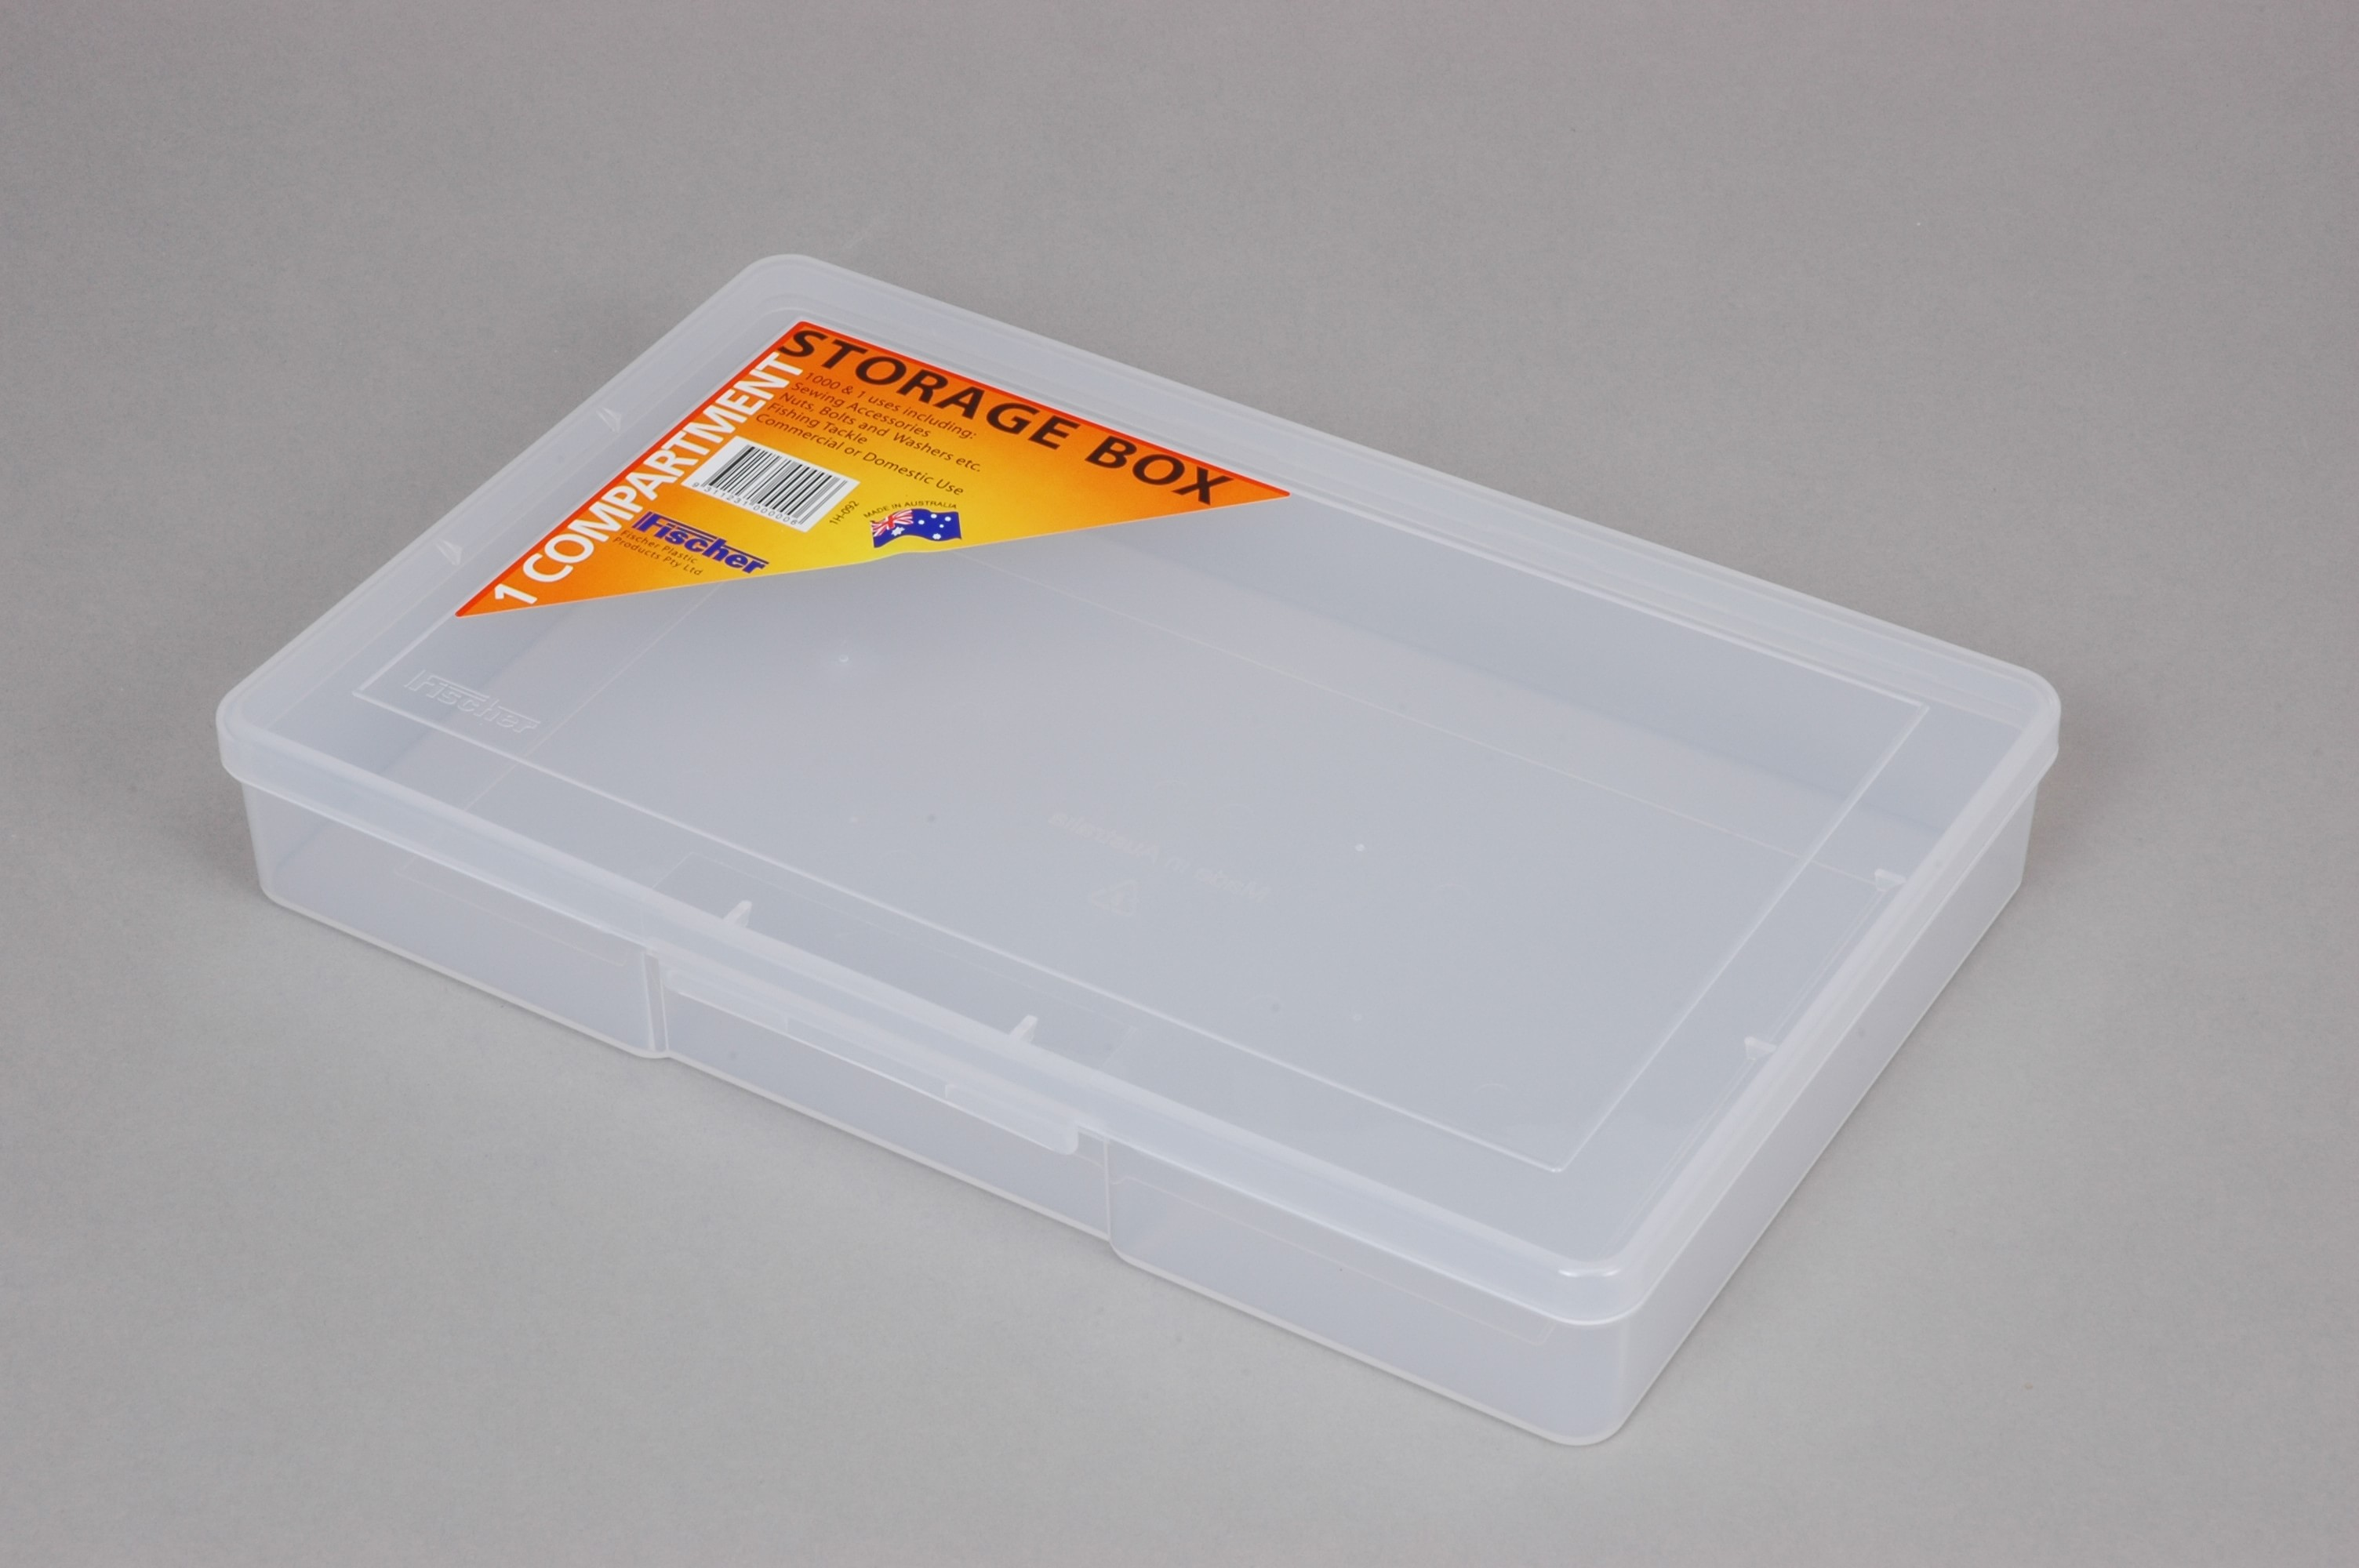 ACCESSORY BOX 1 COMP LARGE CLEAR (2154)